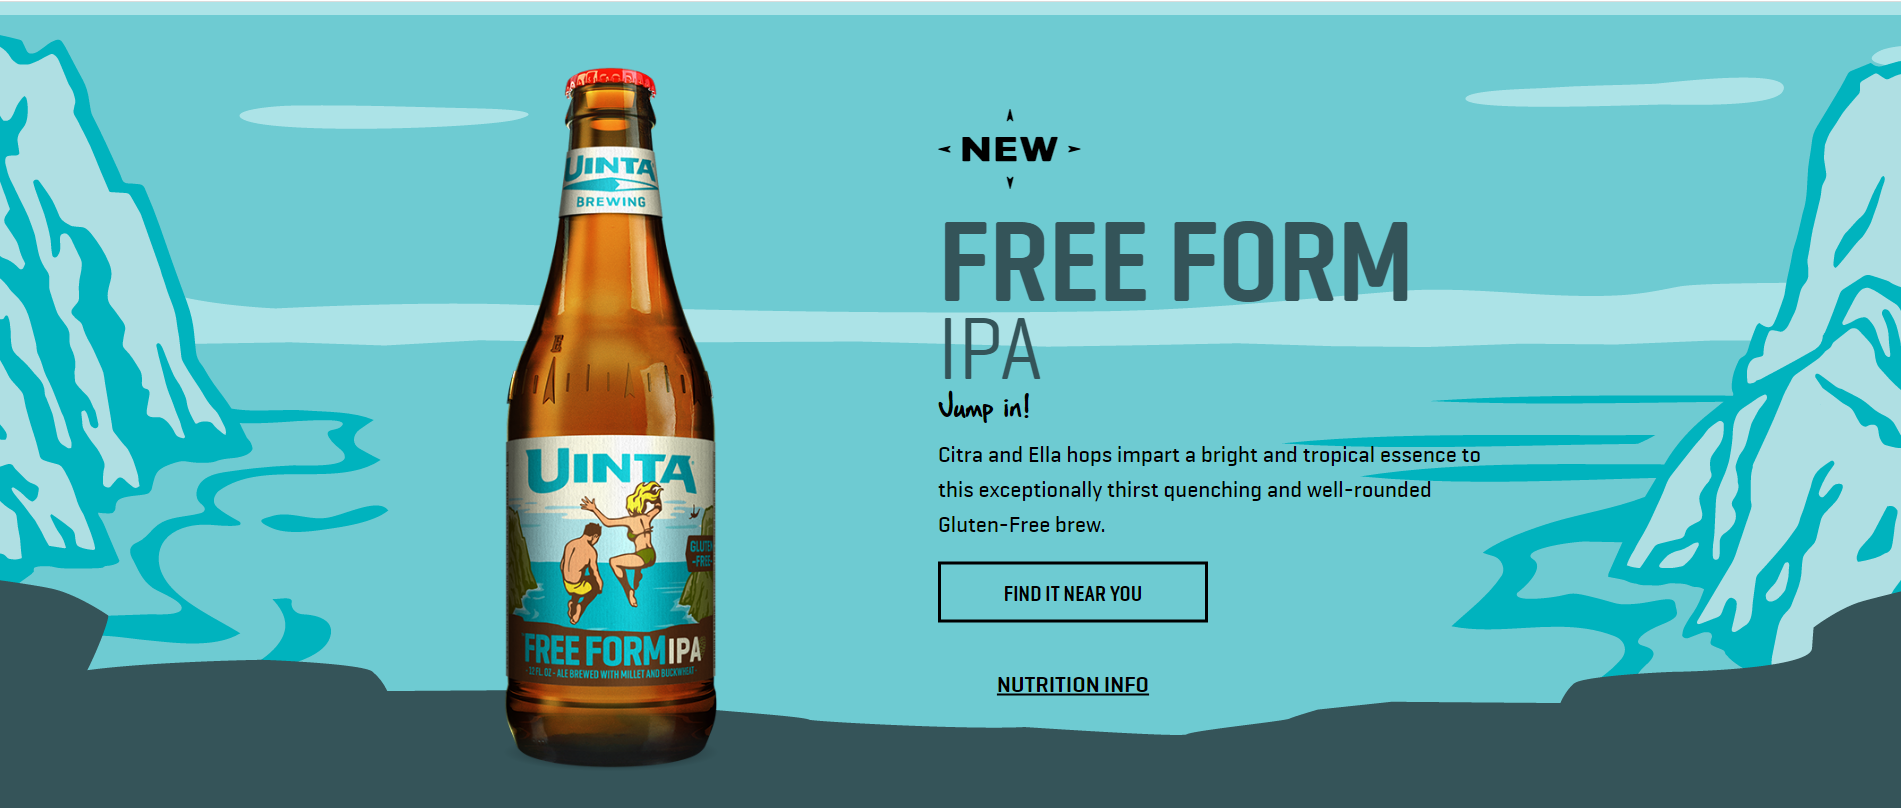 Uinta's Free Form IPA label is as simple as its beer is tasty.